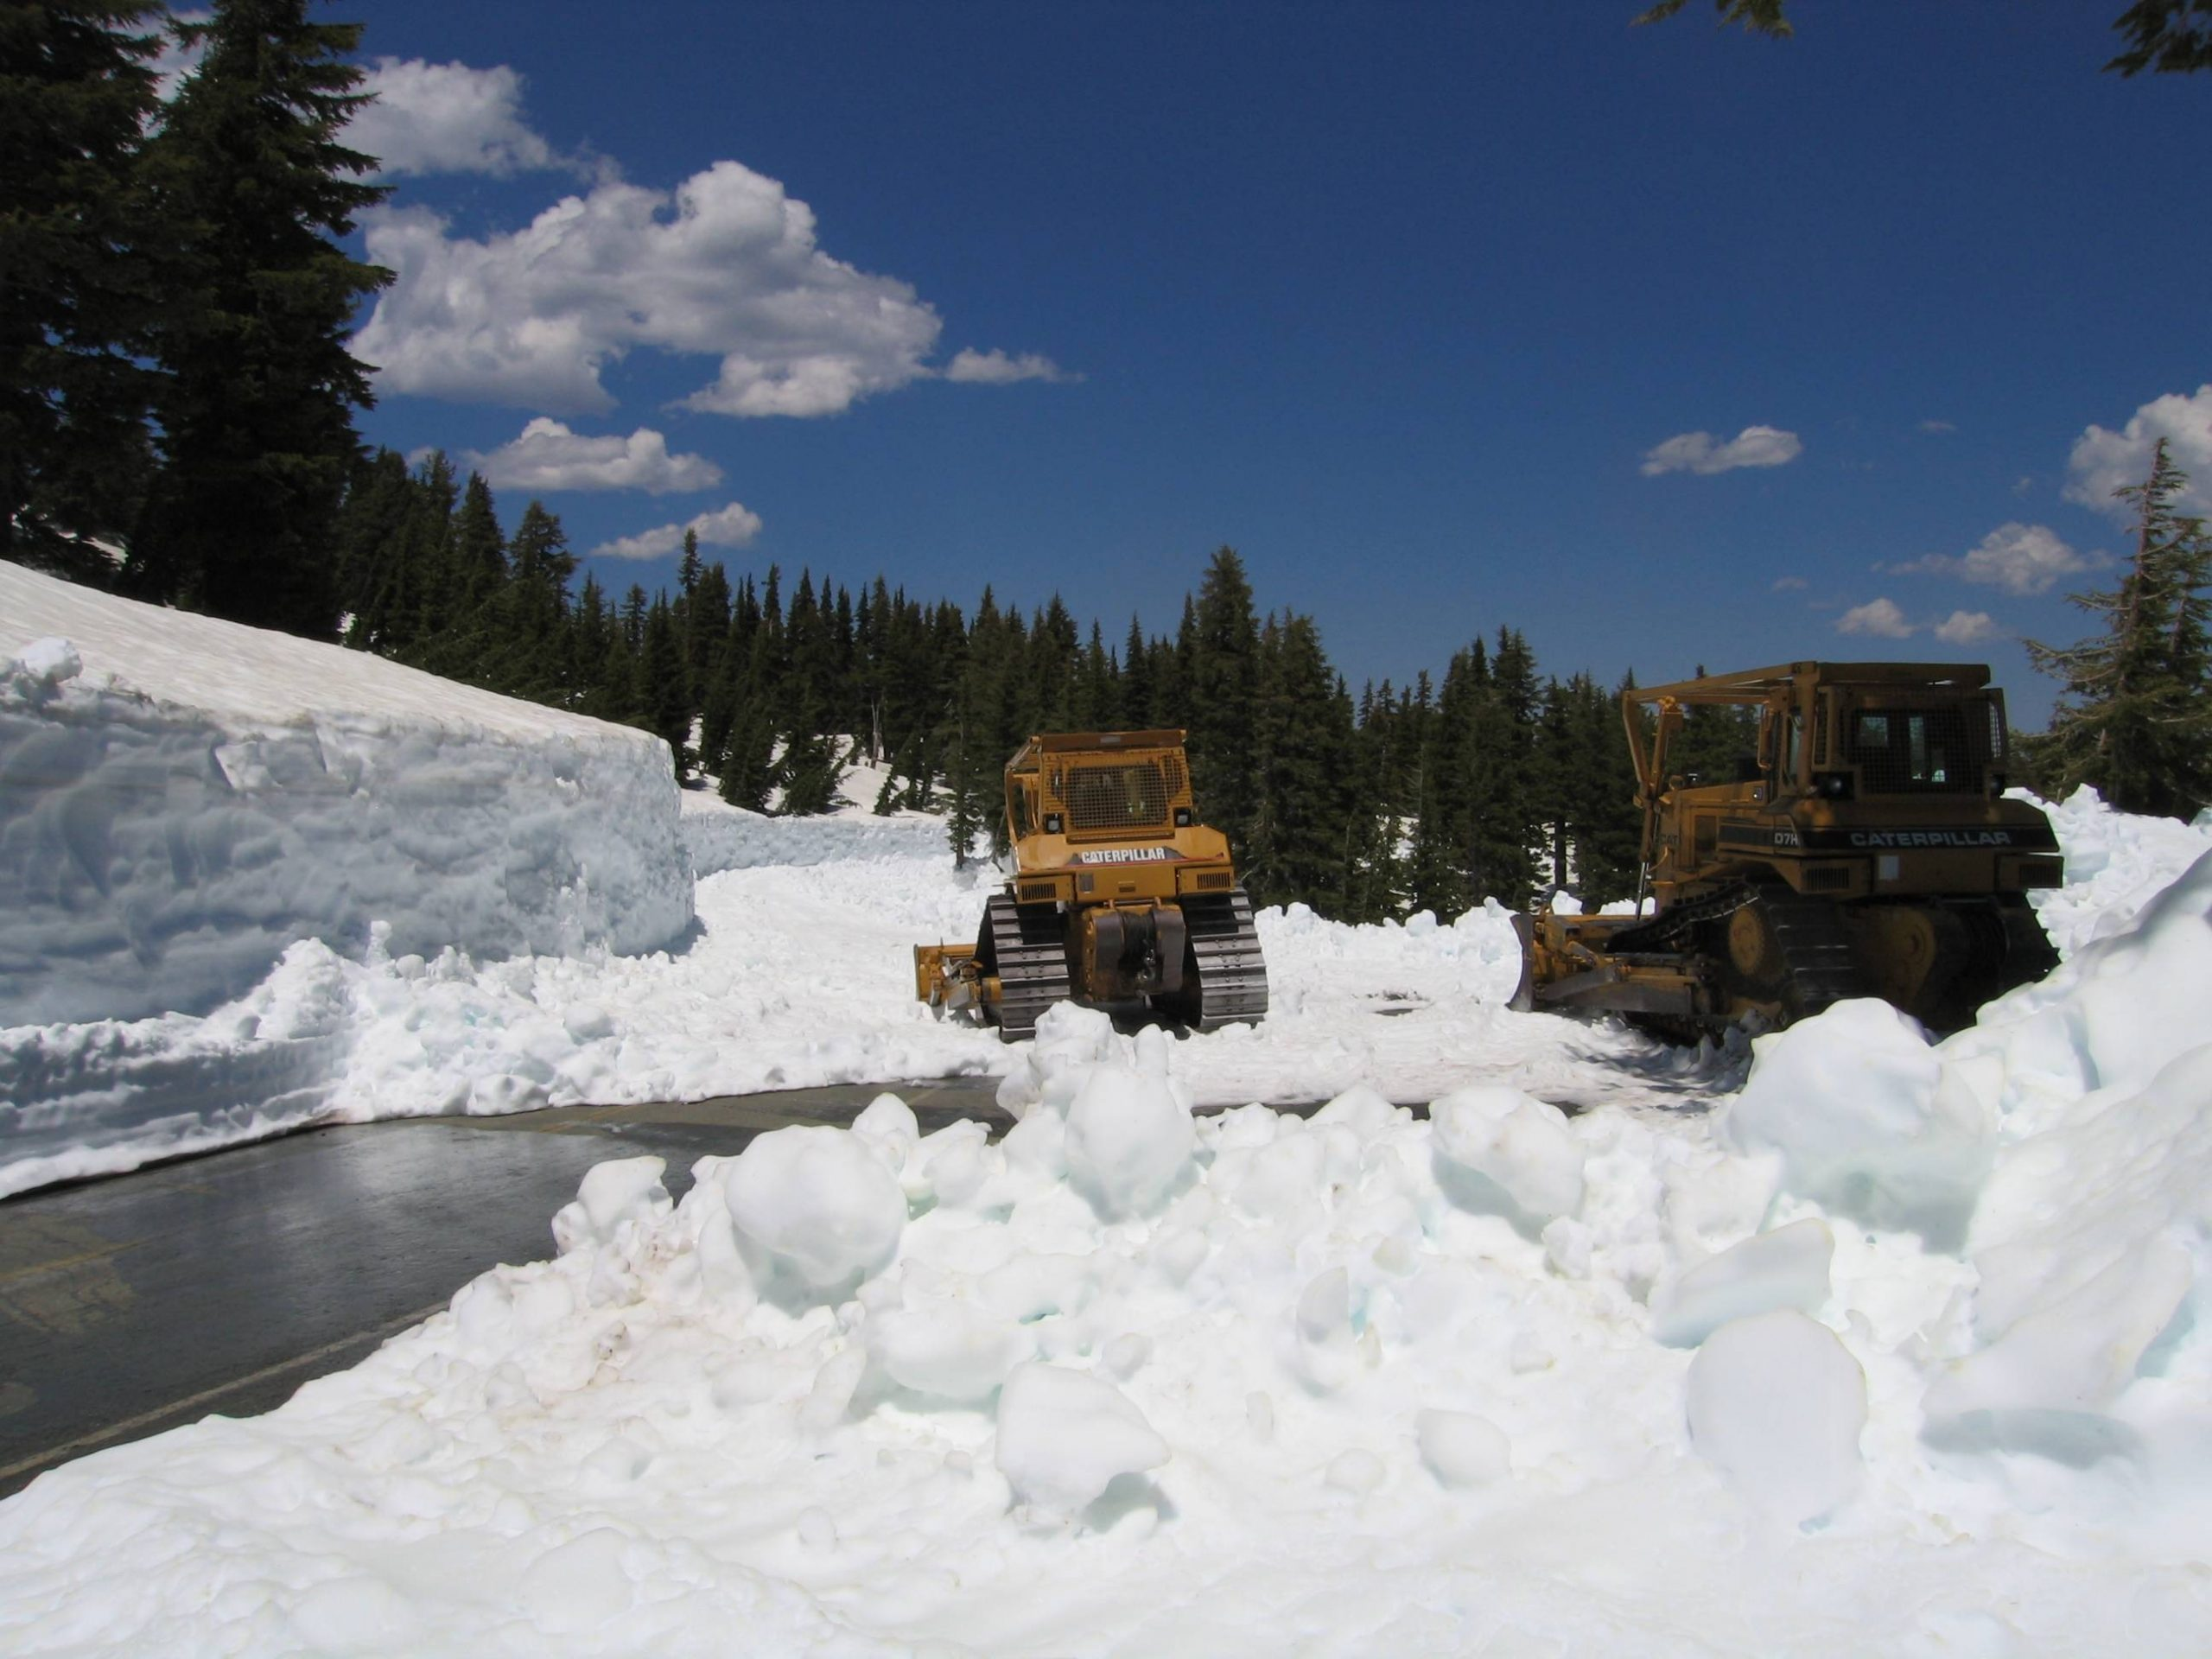 This picture was taken near the Terrace Lake Trailhead. The snow depth on the road at this location was 12 feet or more.